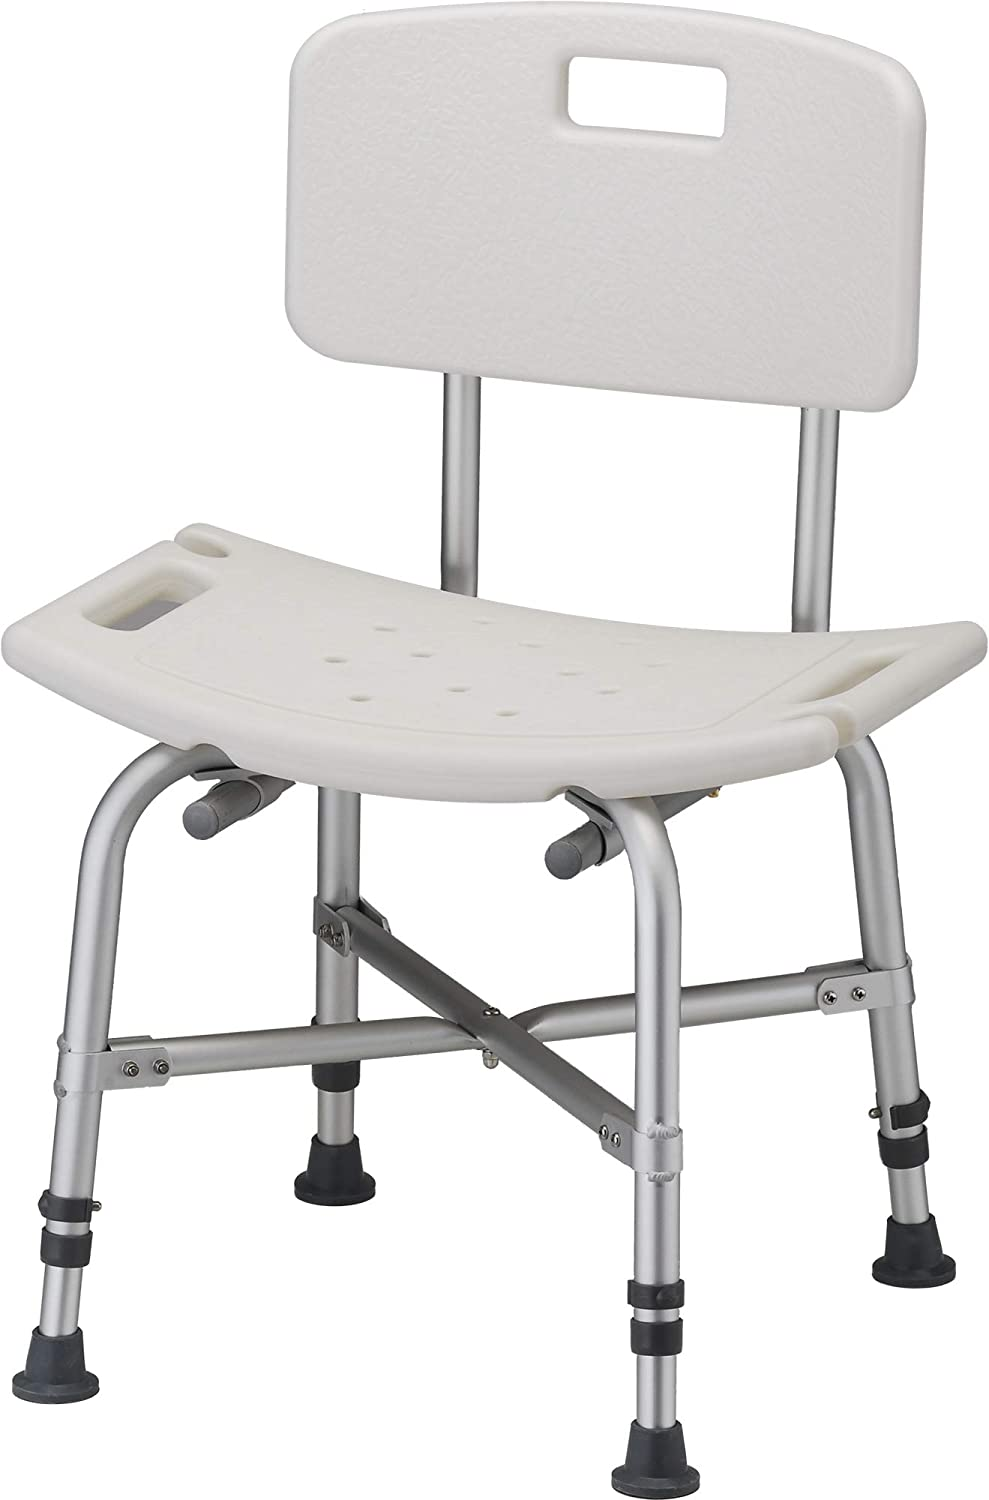 Super beauty product restock quality top NOVA trust Medical Products Heavy Duty Shower Chair Bath Back with 5